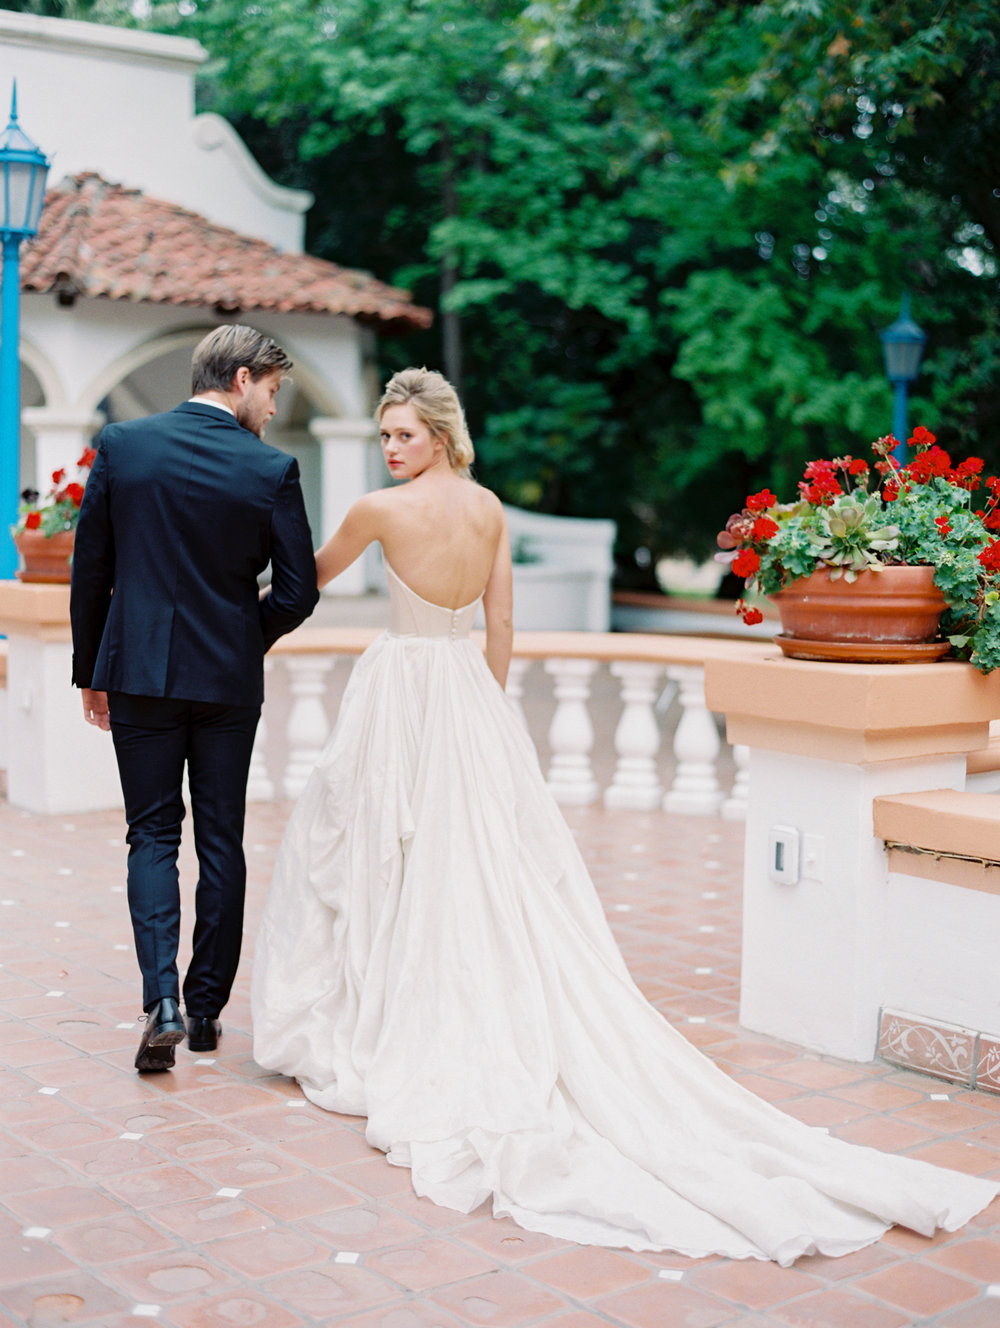 Jon Cu162- Rancho-Las-Lomas-california-film-wedding-bride-groom-spanish-peach.jpg